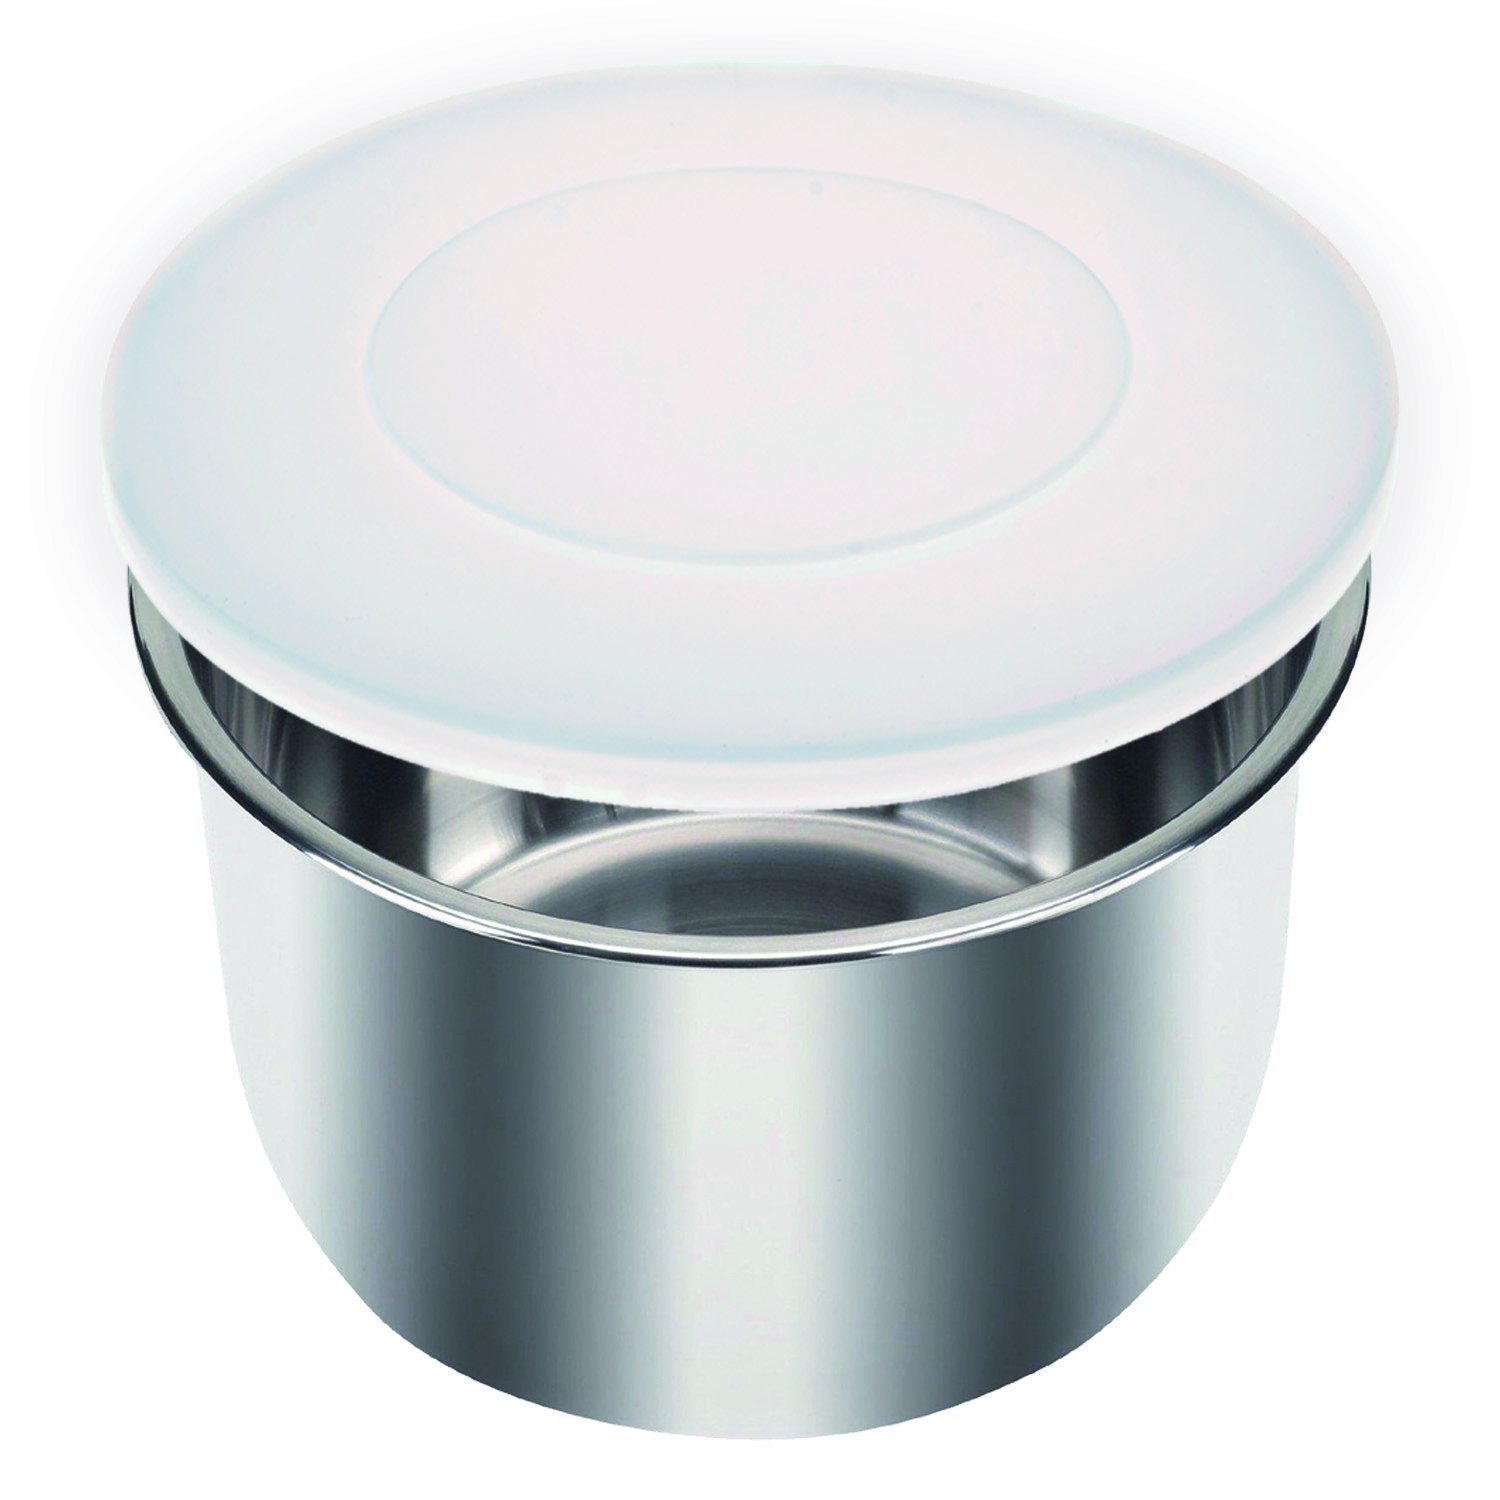 8 Qt Insta Pot Silicone Lid/Cover (BPA-free) - Fits IP-DUO80 7-in-1 Programmable Electric Pressure Cooker